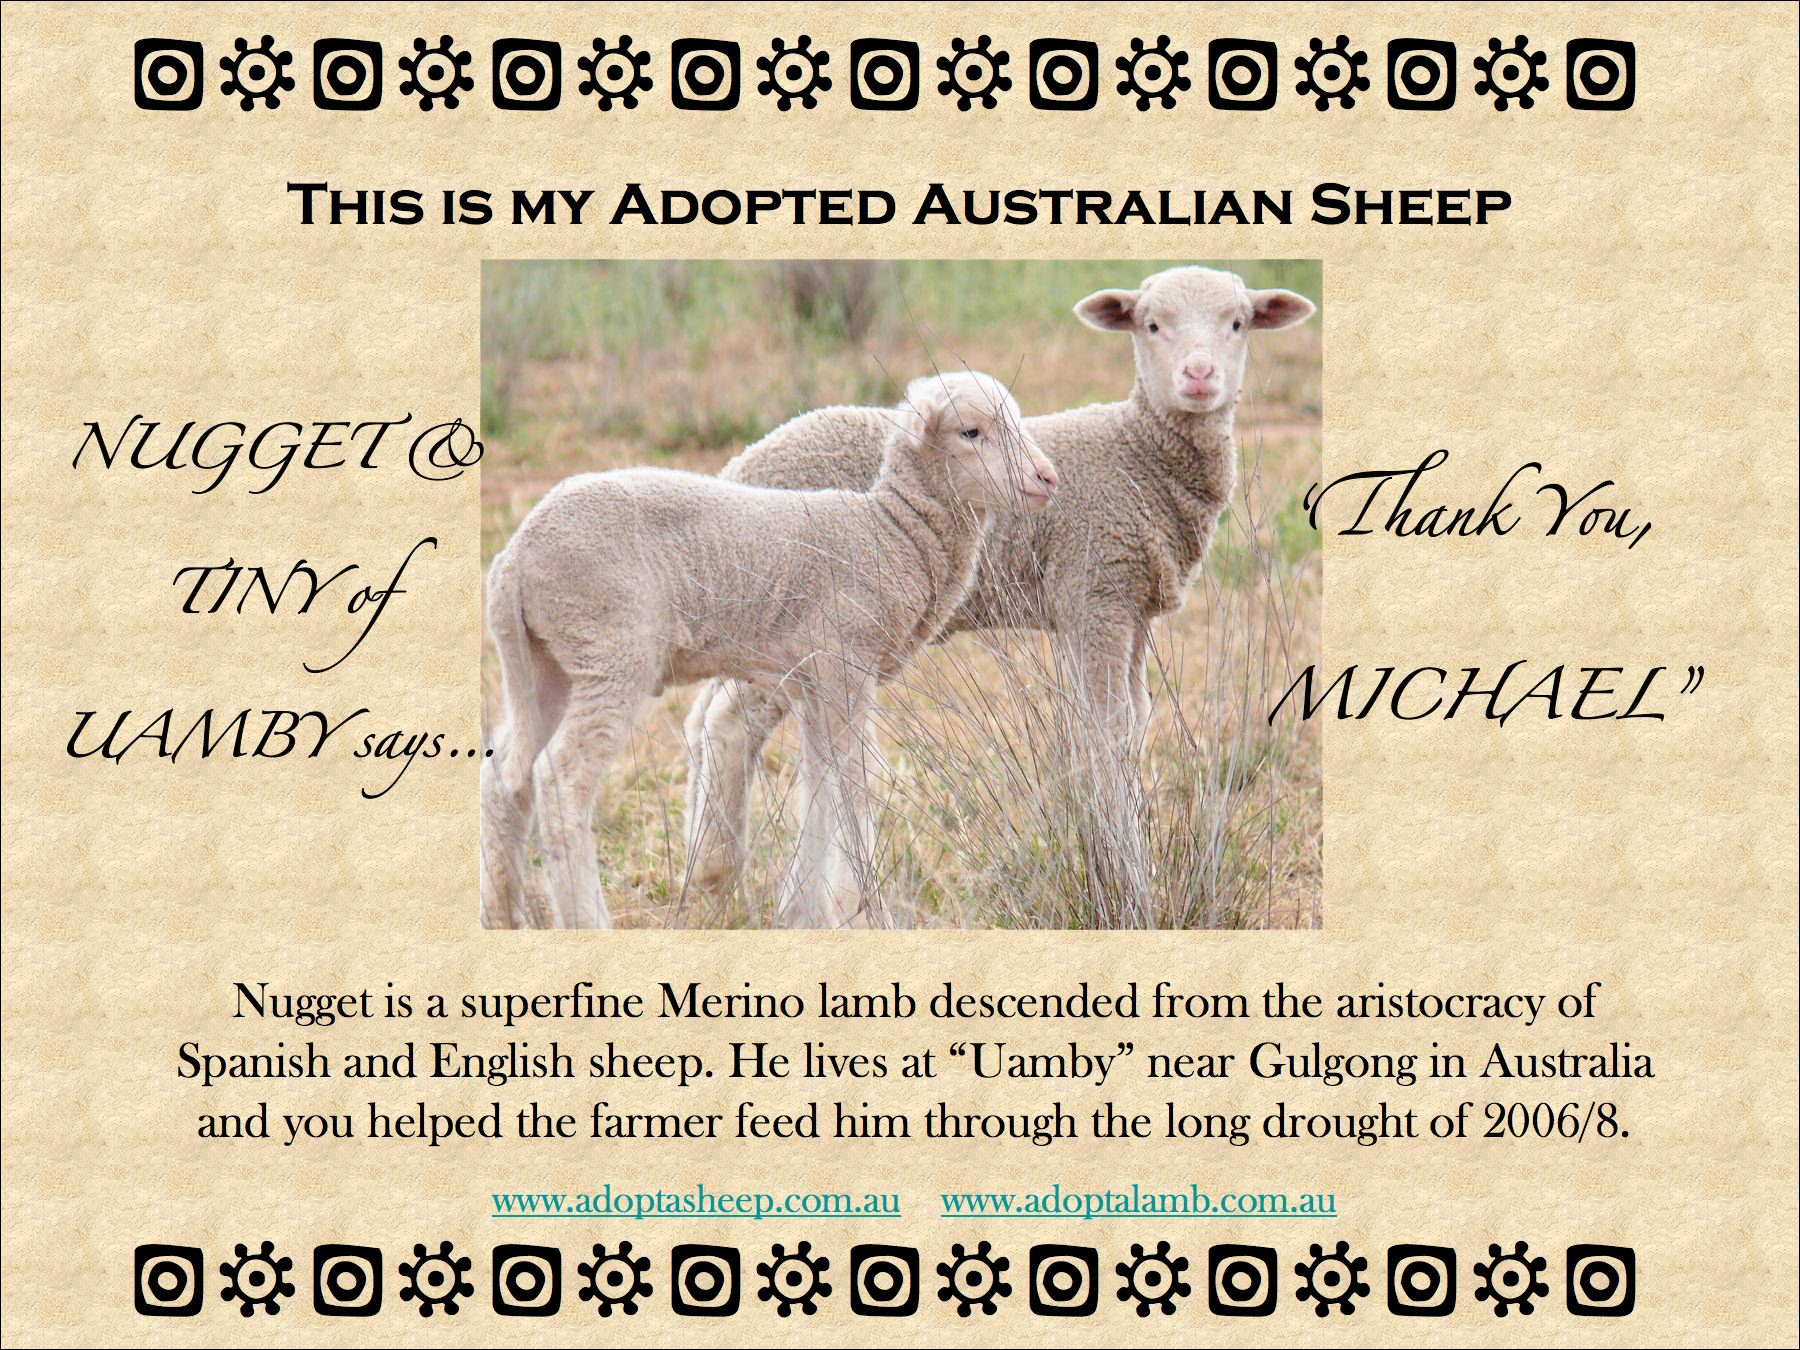 shows the adopted sheep